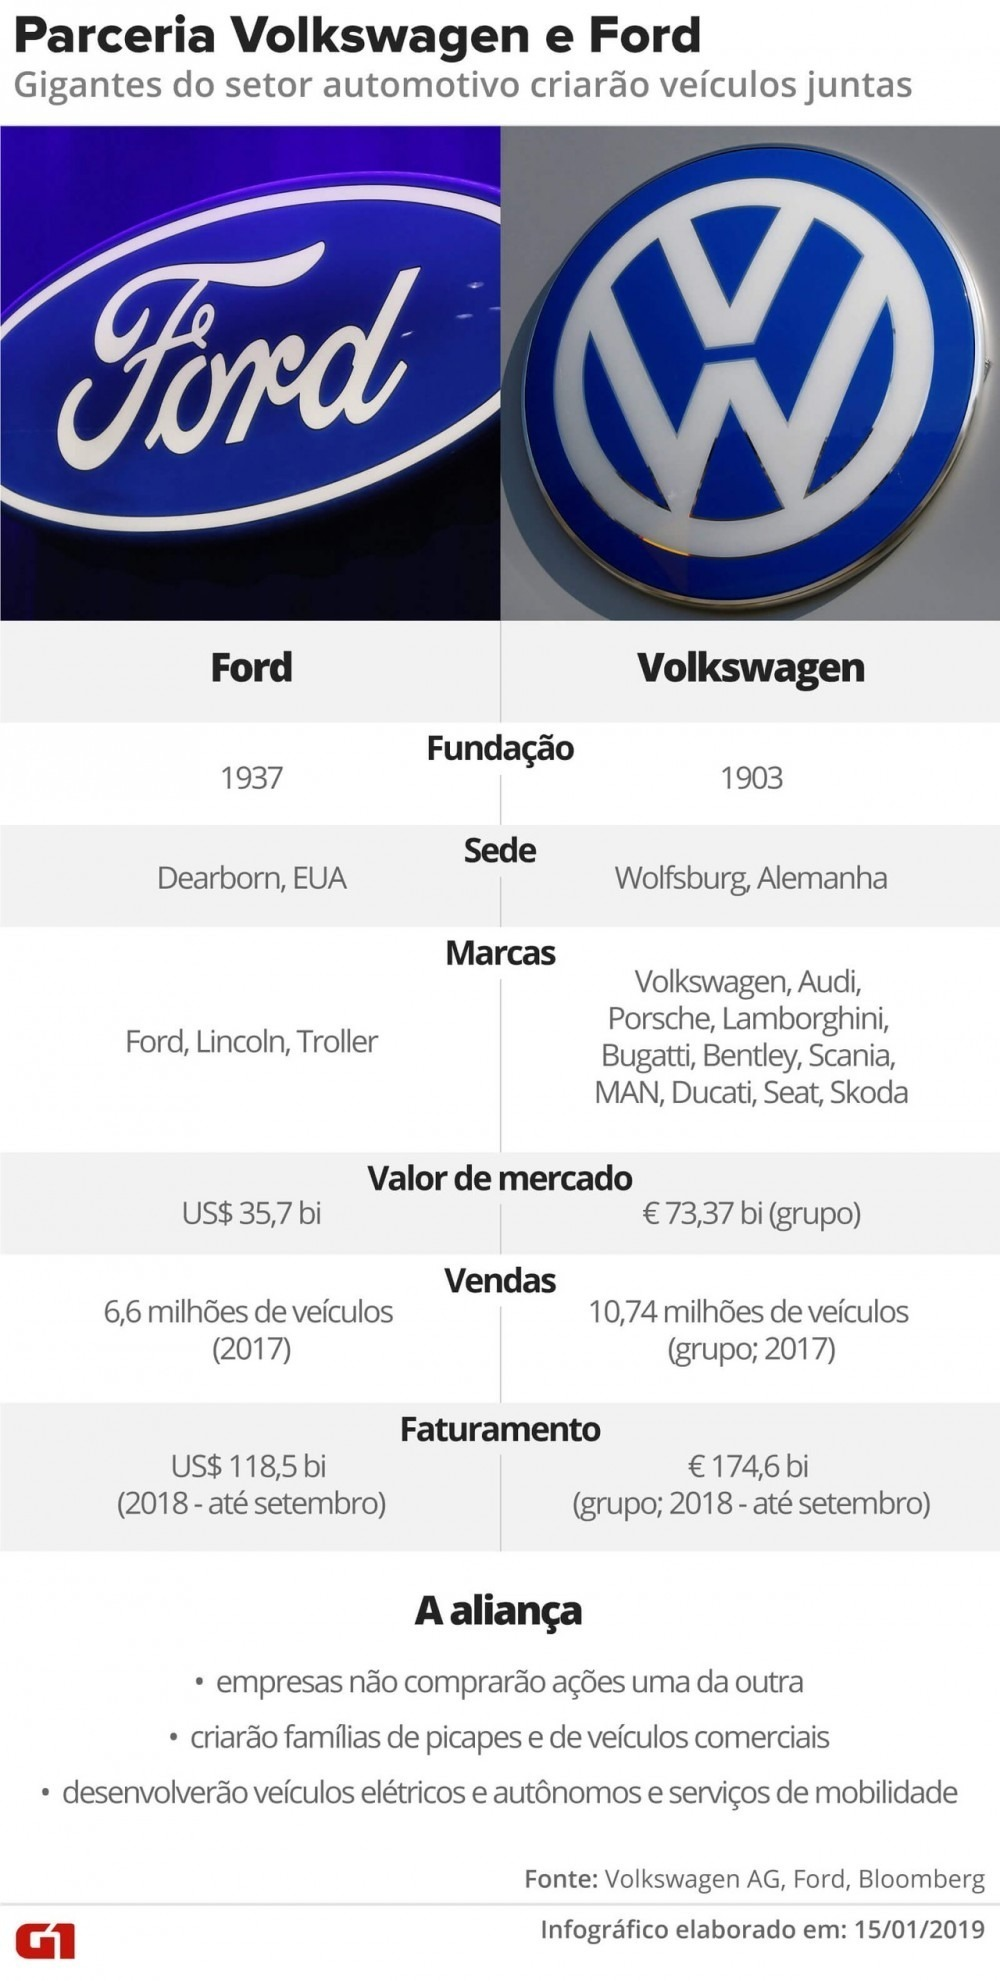 ford e wolkswagen